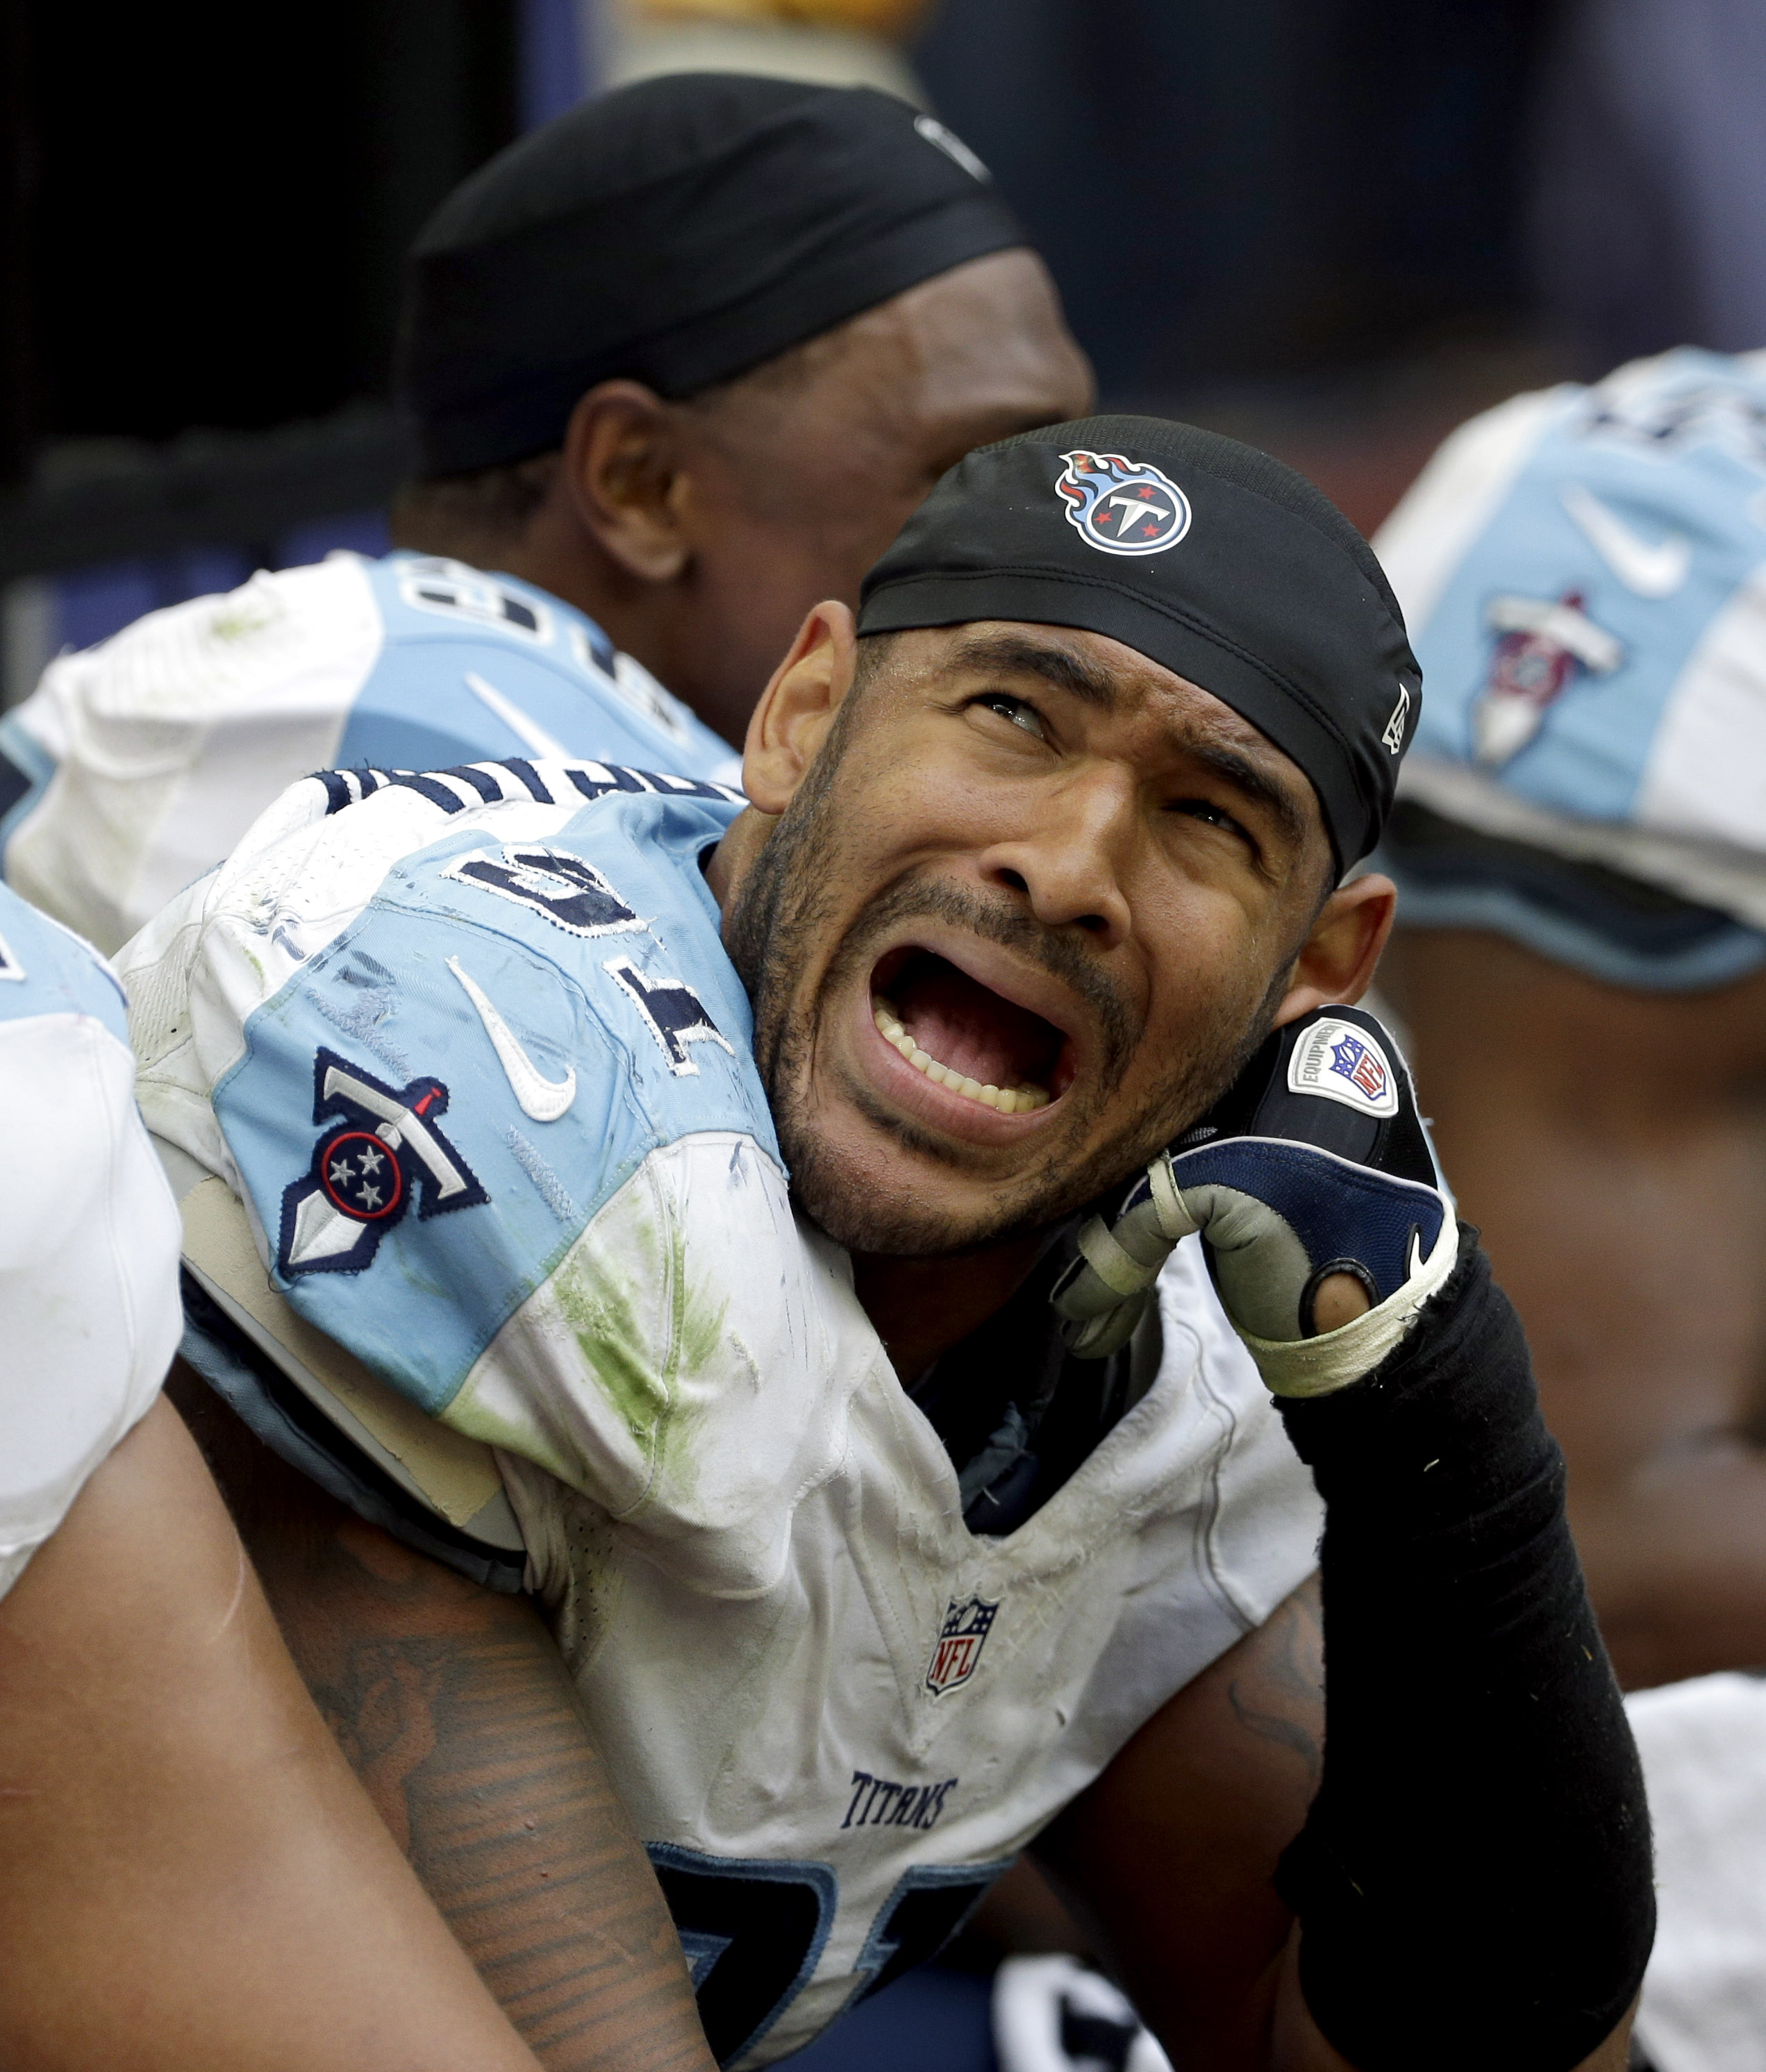 FILE - In this Nov. 30, 2014 file photo, Tennessee Titans outside linebacker Derrick Morgan reacts as the receiving yards for Houston Texans wide receiver DeAndre Hopkins are announced and posted on the scoreboard during the second half of an NFL football